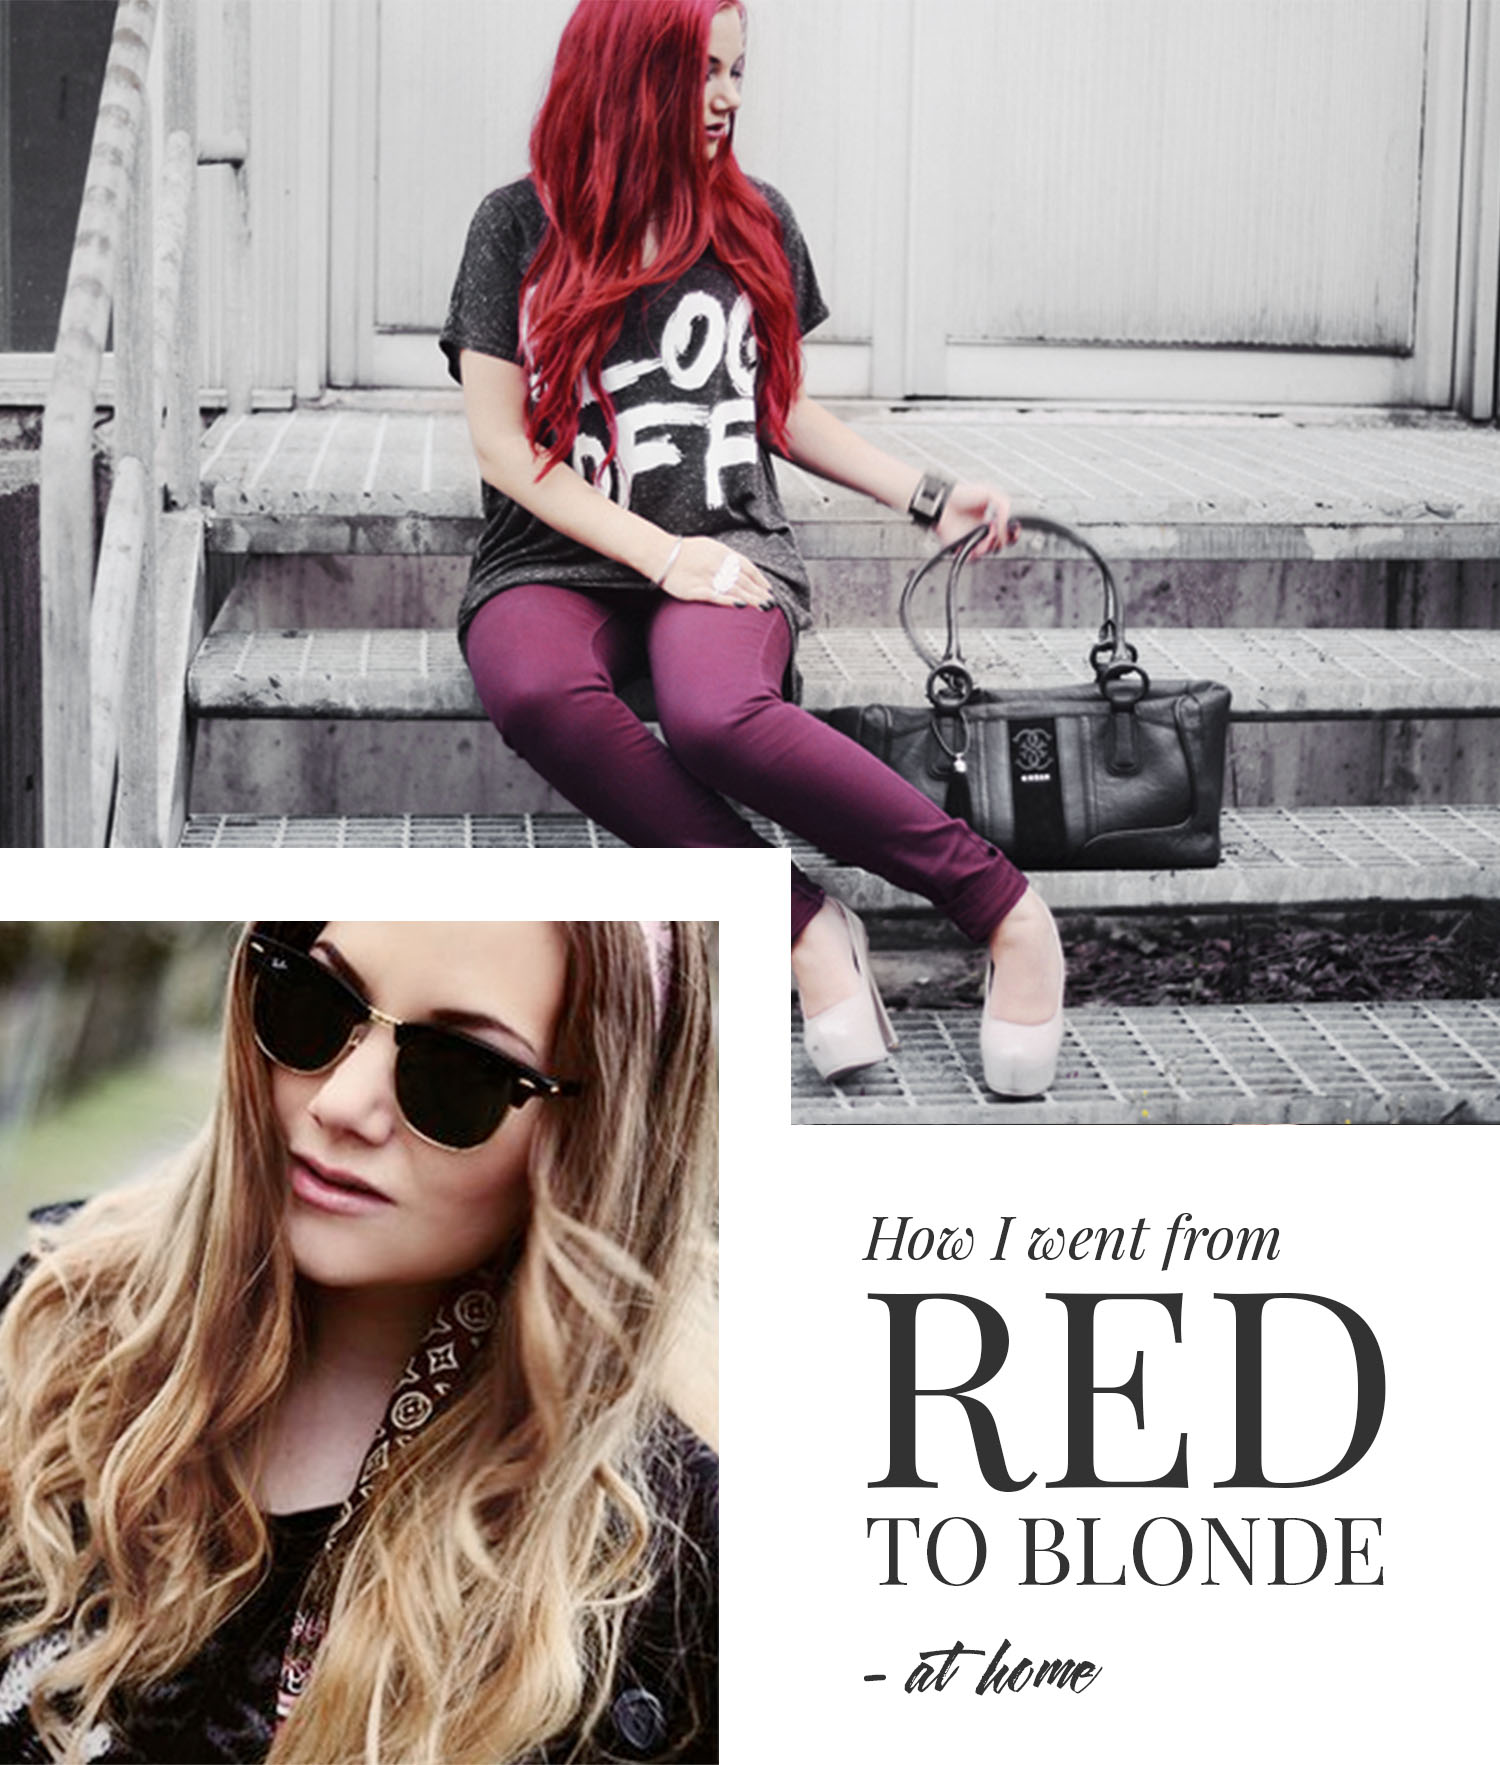 How I went from red to blonde hair at home - Från rött till blont hår hemma